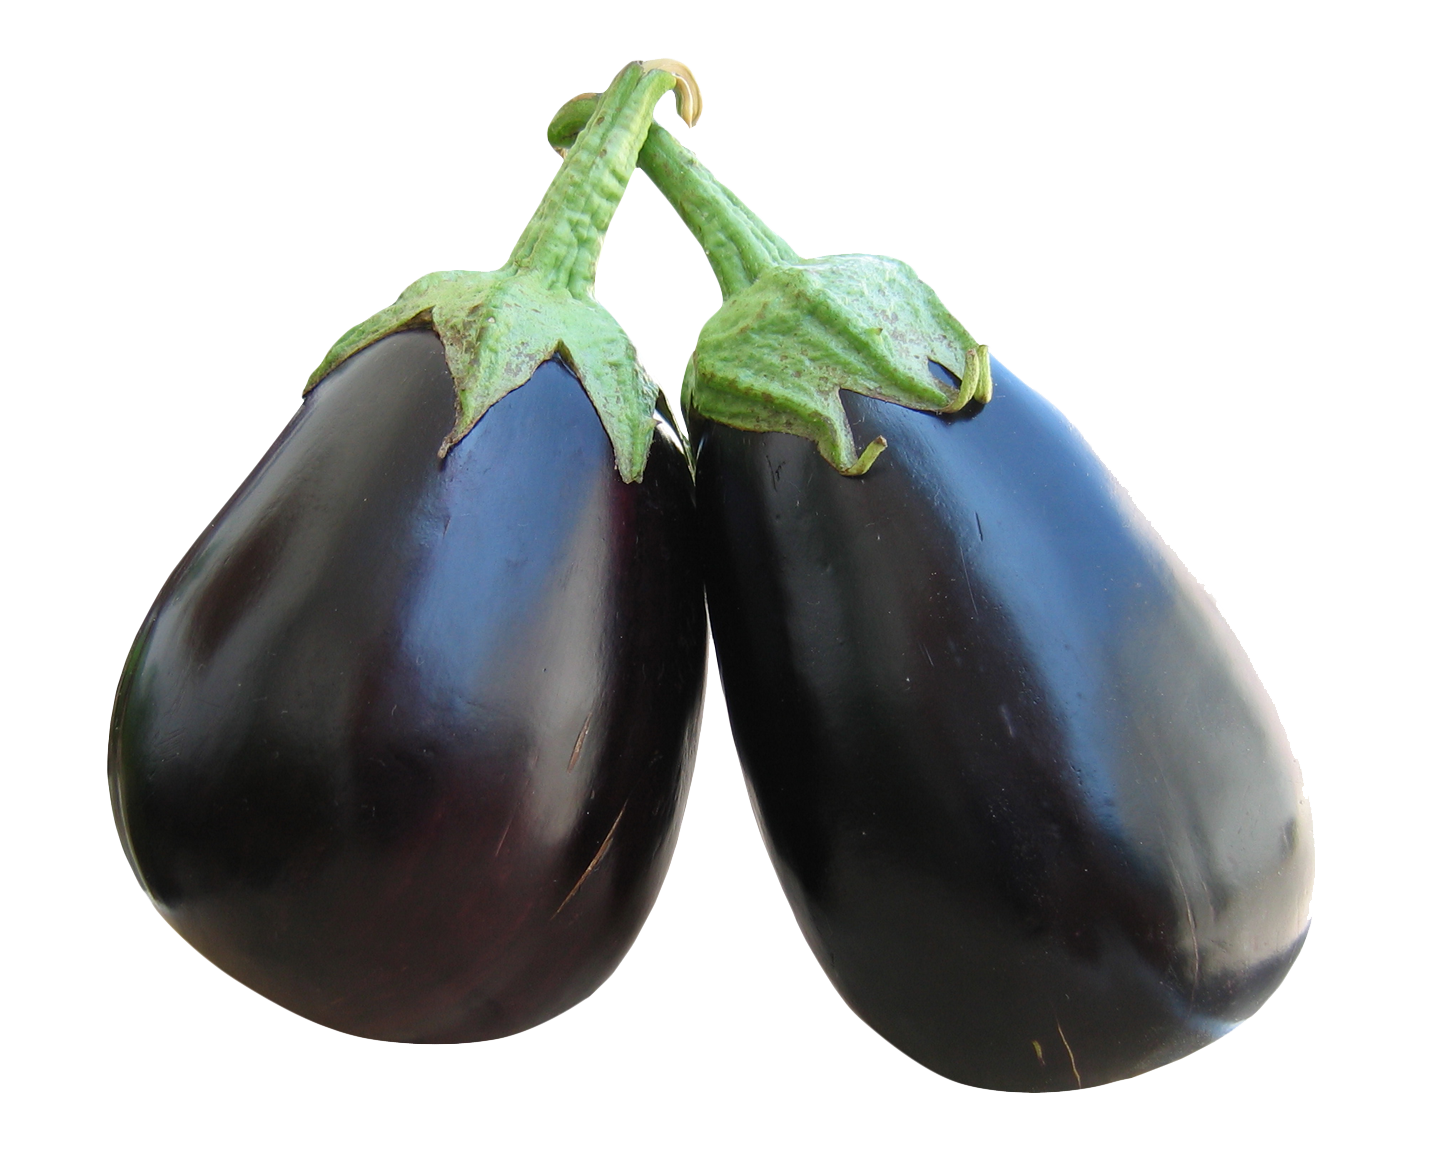 Eggplant Picture Download